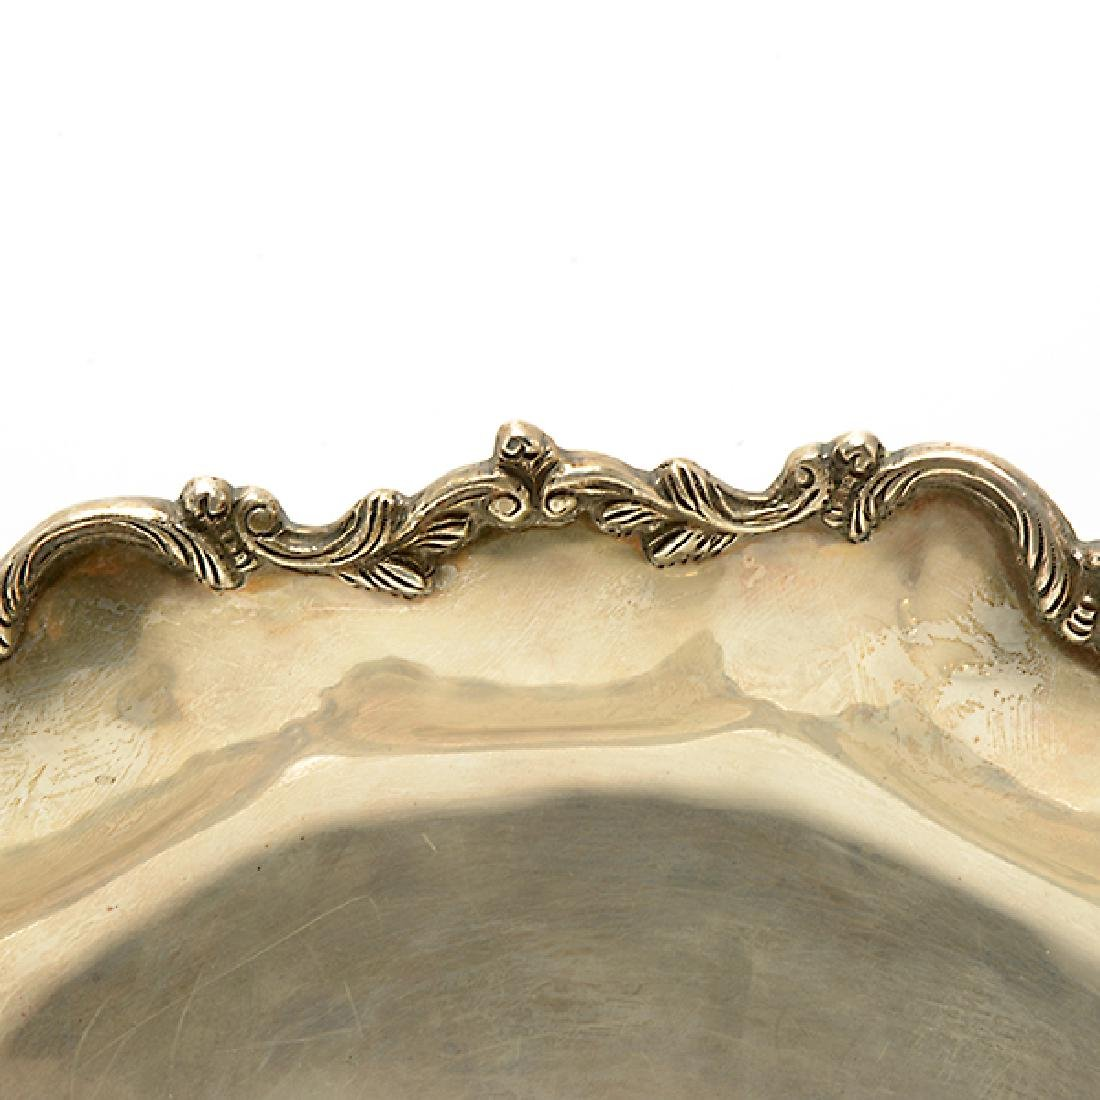 Collection of Mexican Sterling Silver Table Articles - 3